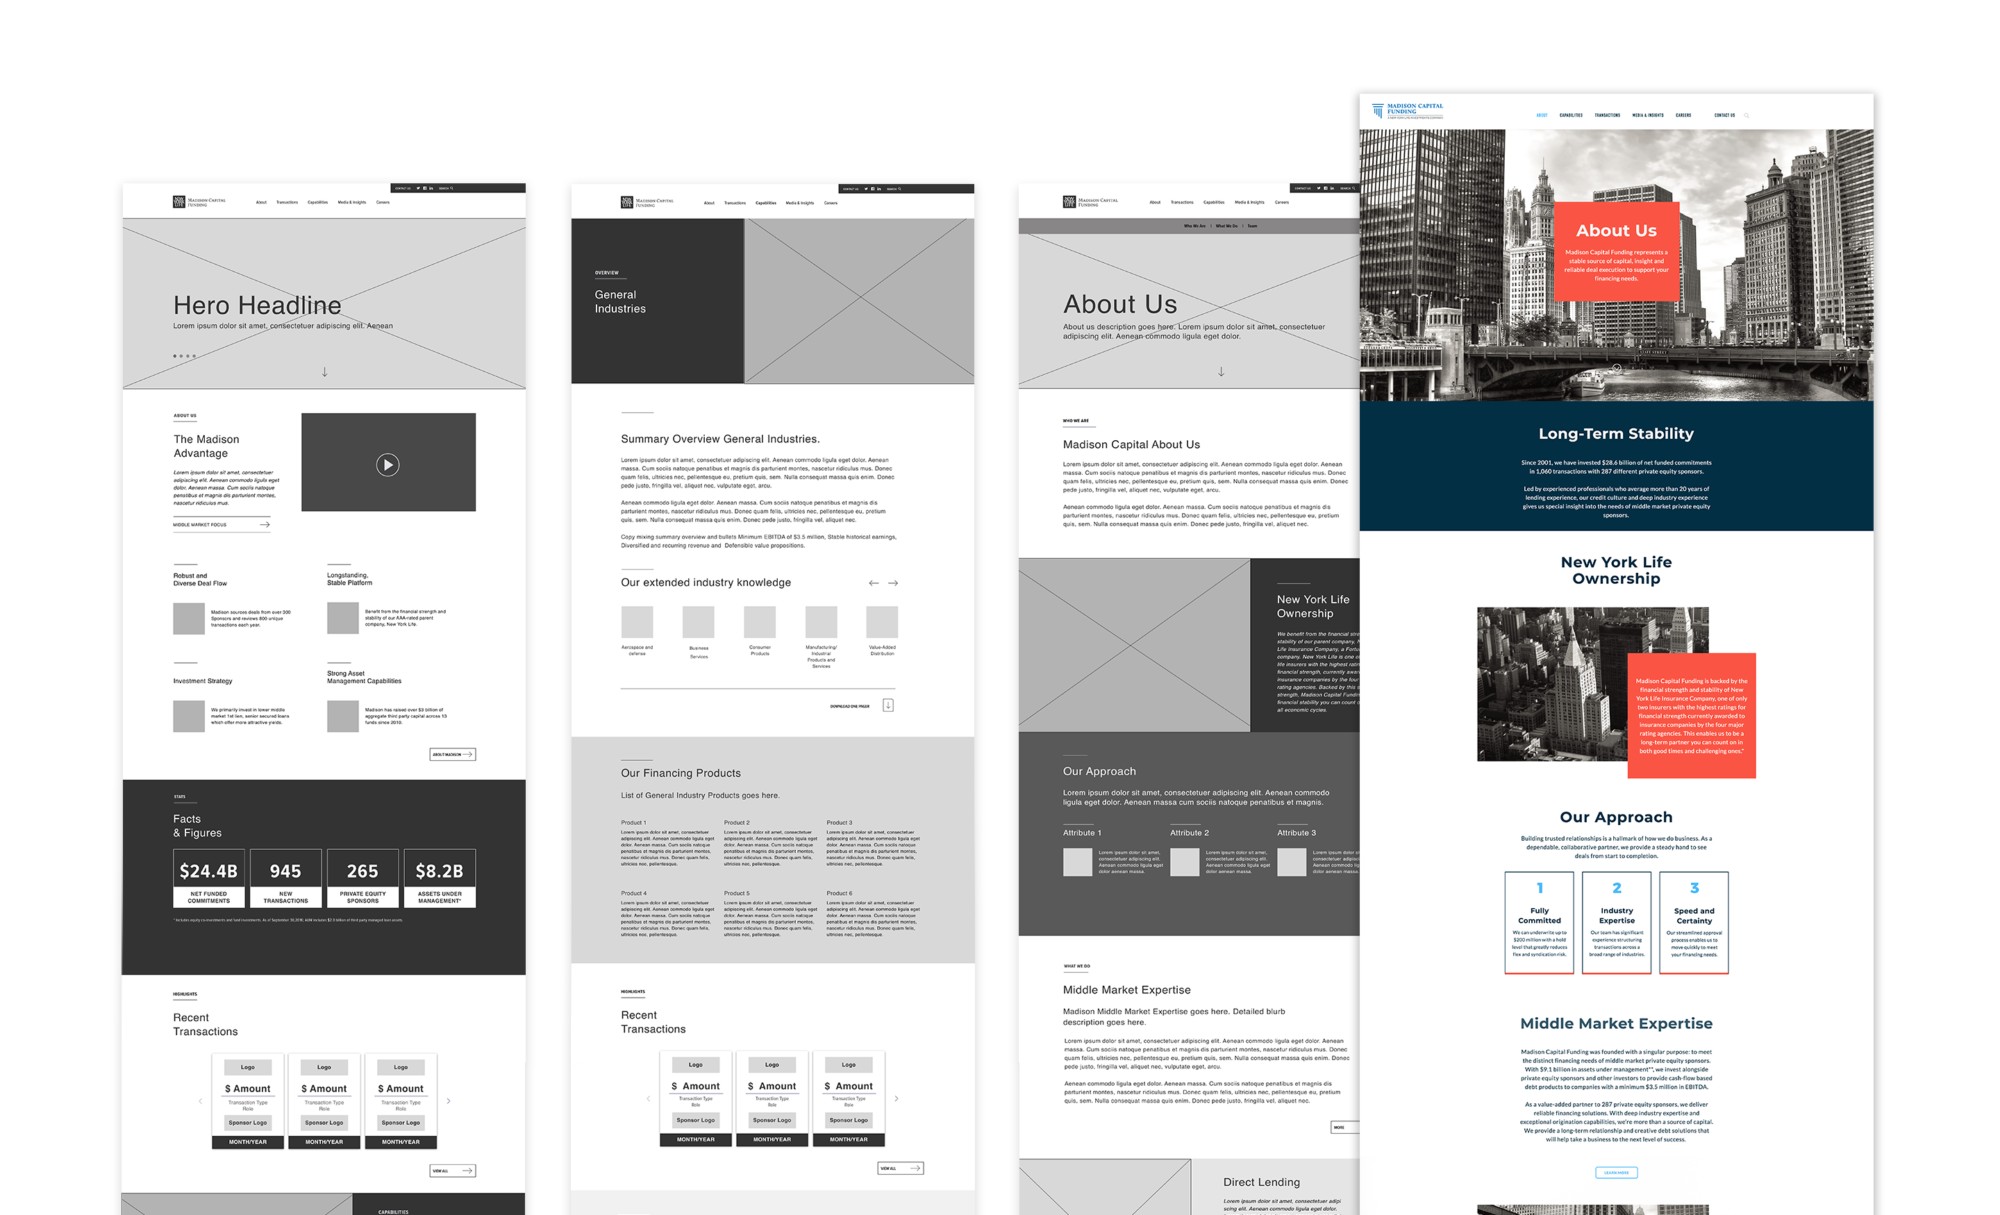 Wireframes and final page design to show translation of user-experience and visual design. Wireframes include the Homepage, Industries page, and the About page.